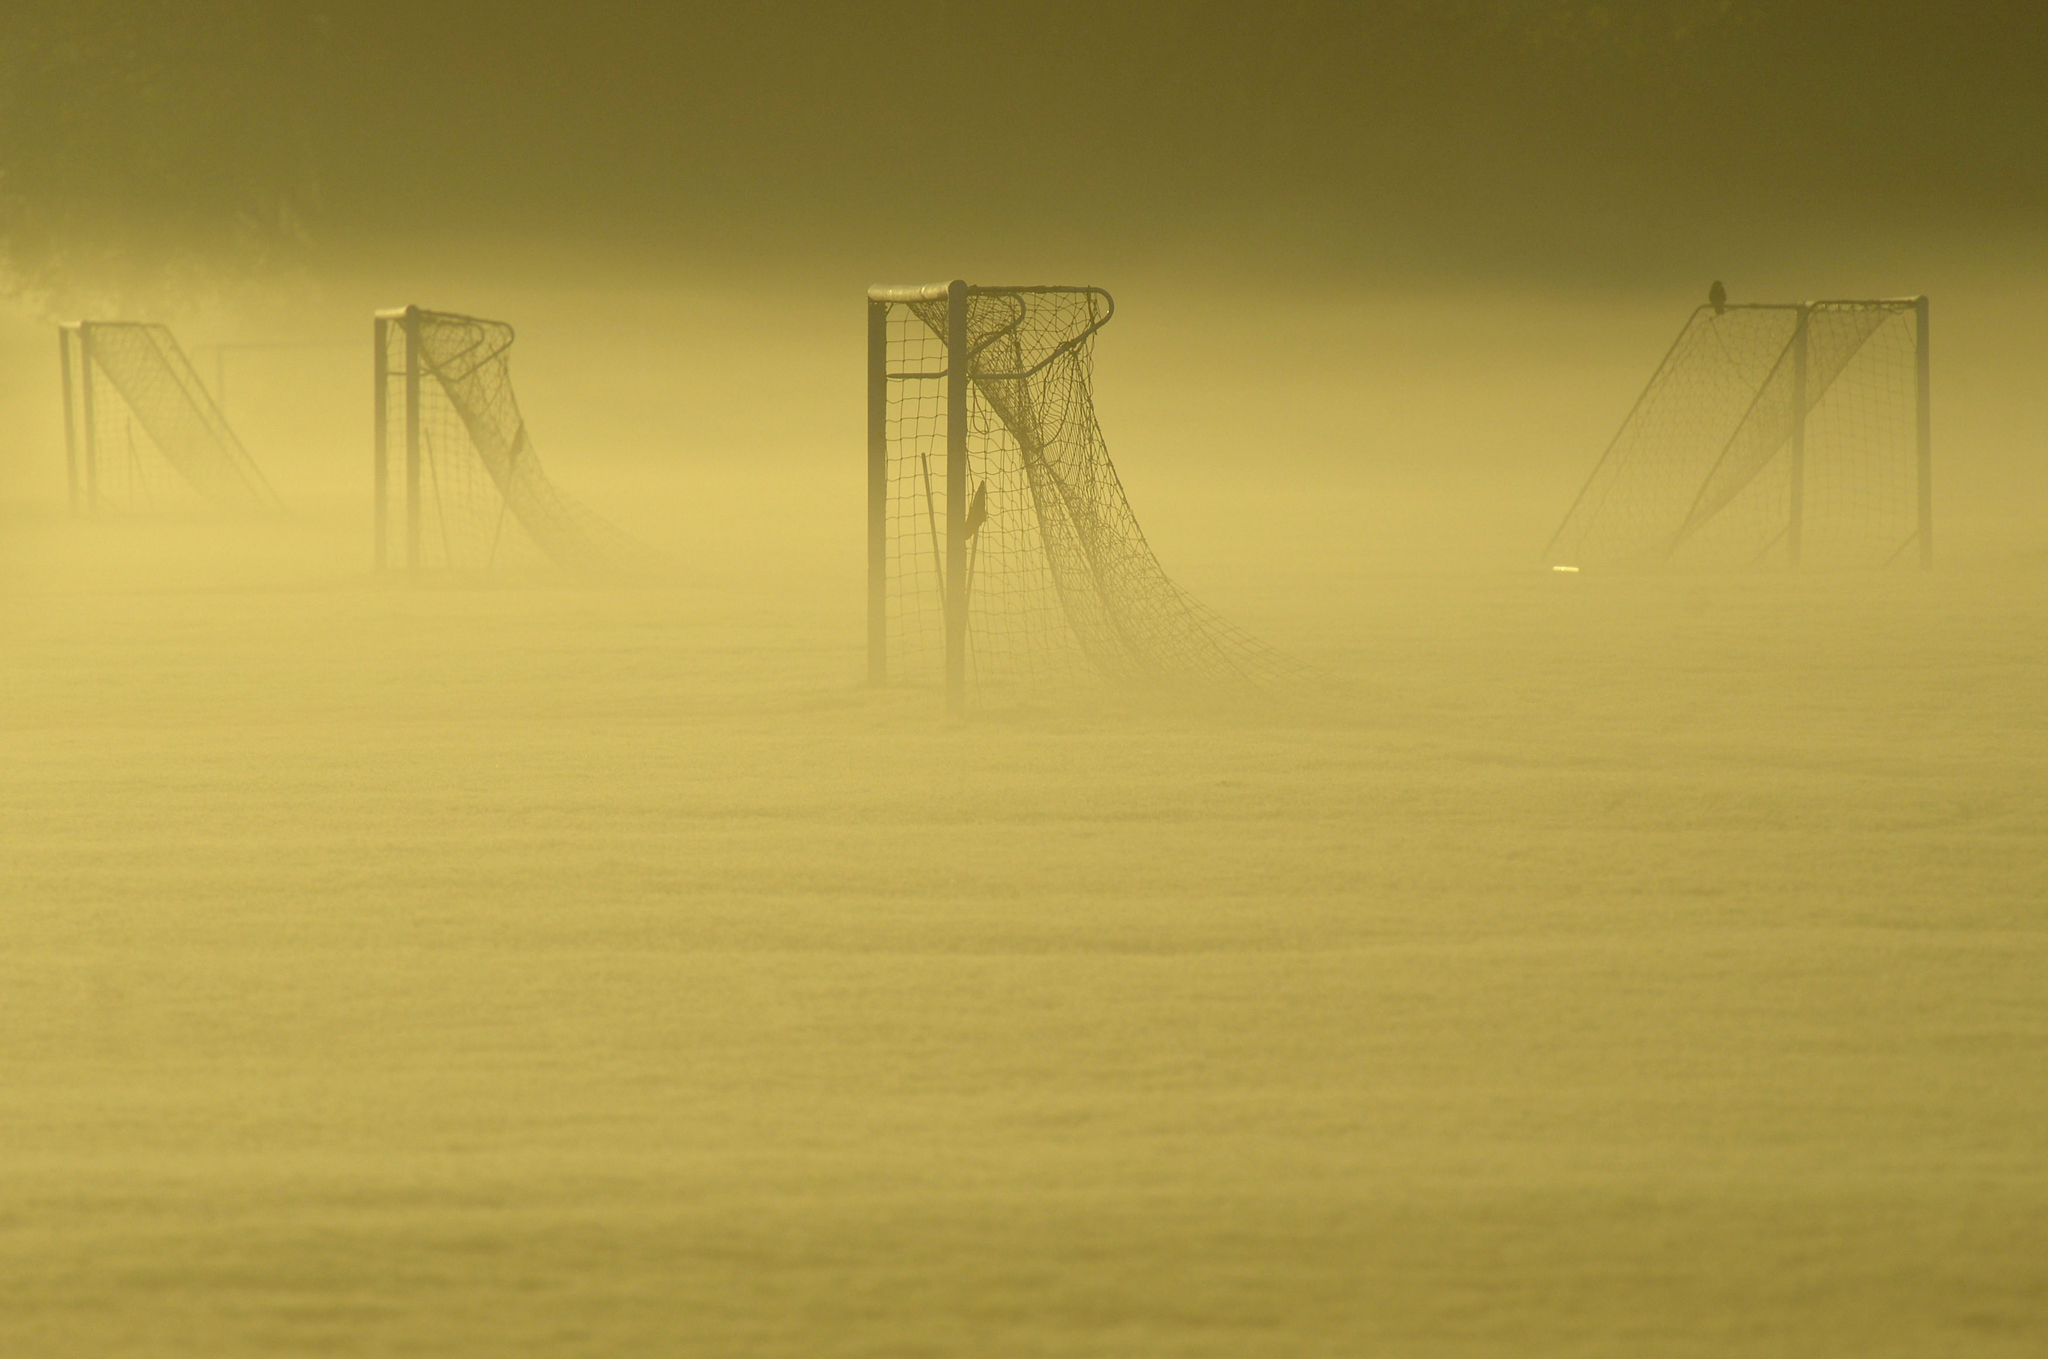 Soccer goal posts are seen in the autumn mist at Dukes Meadows in Chiswick, west London...Soccer goal posts are seen in the autumn mist at Dukes Meadows in Chiswick, west London November 13, 2013. REUTERS/Toby Melville